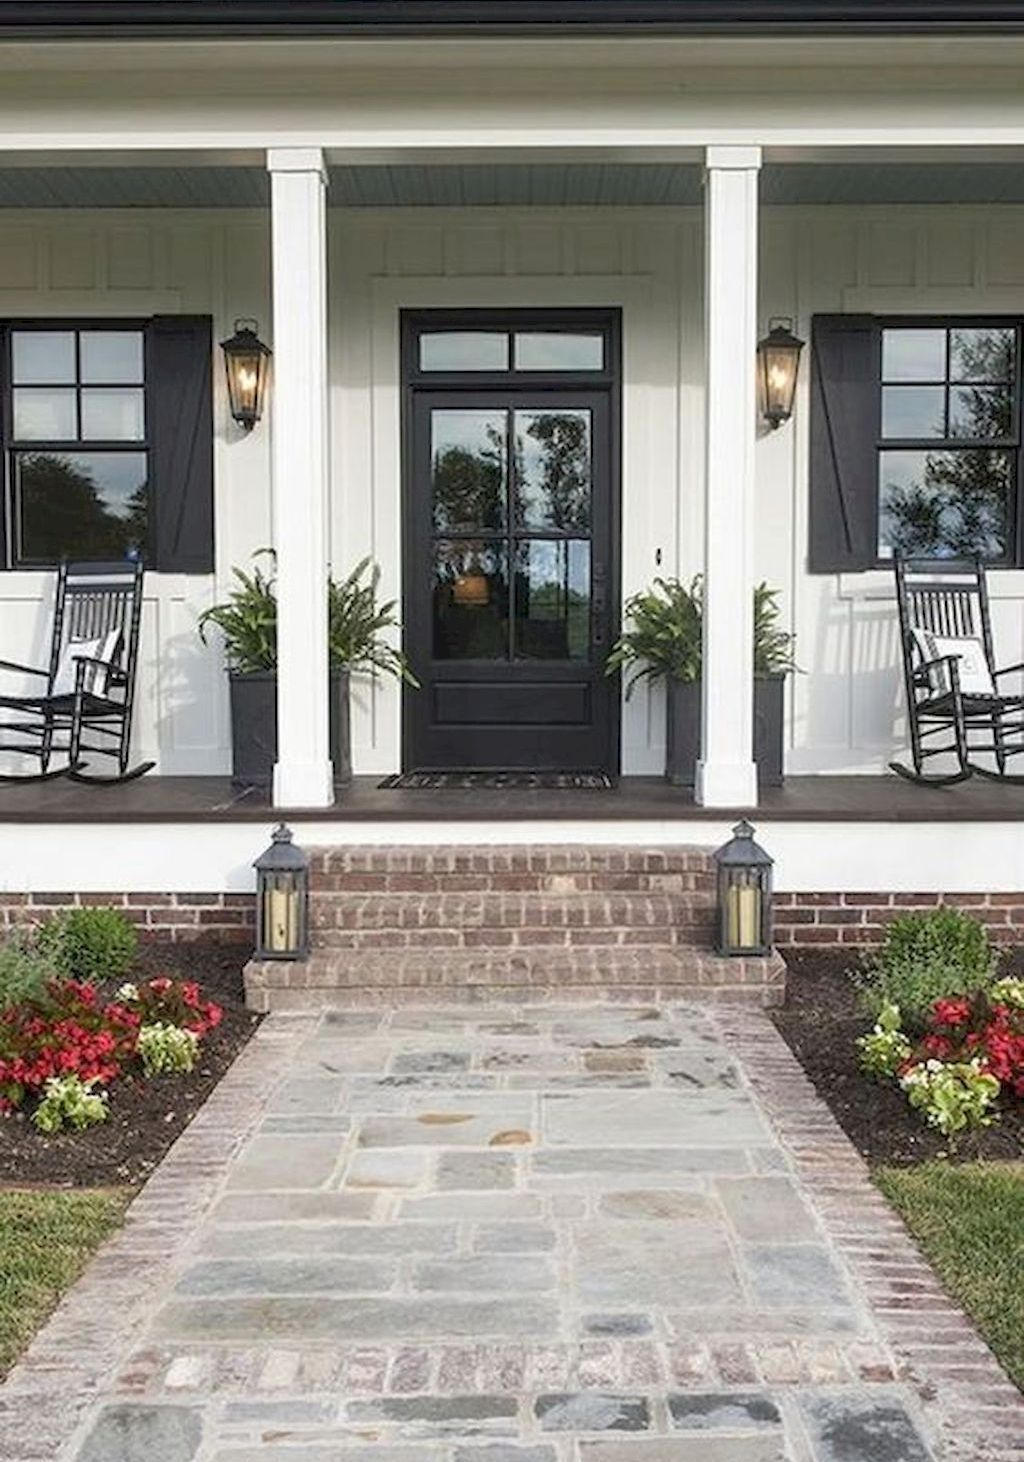 60 beautiful rustic farmhouse front porches design and on beautiful modern farmhouse trending exterior design ideas id=77089